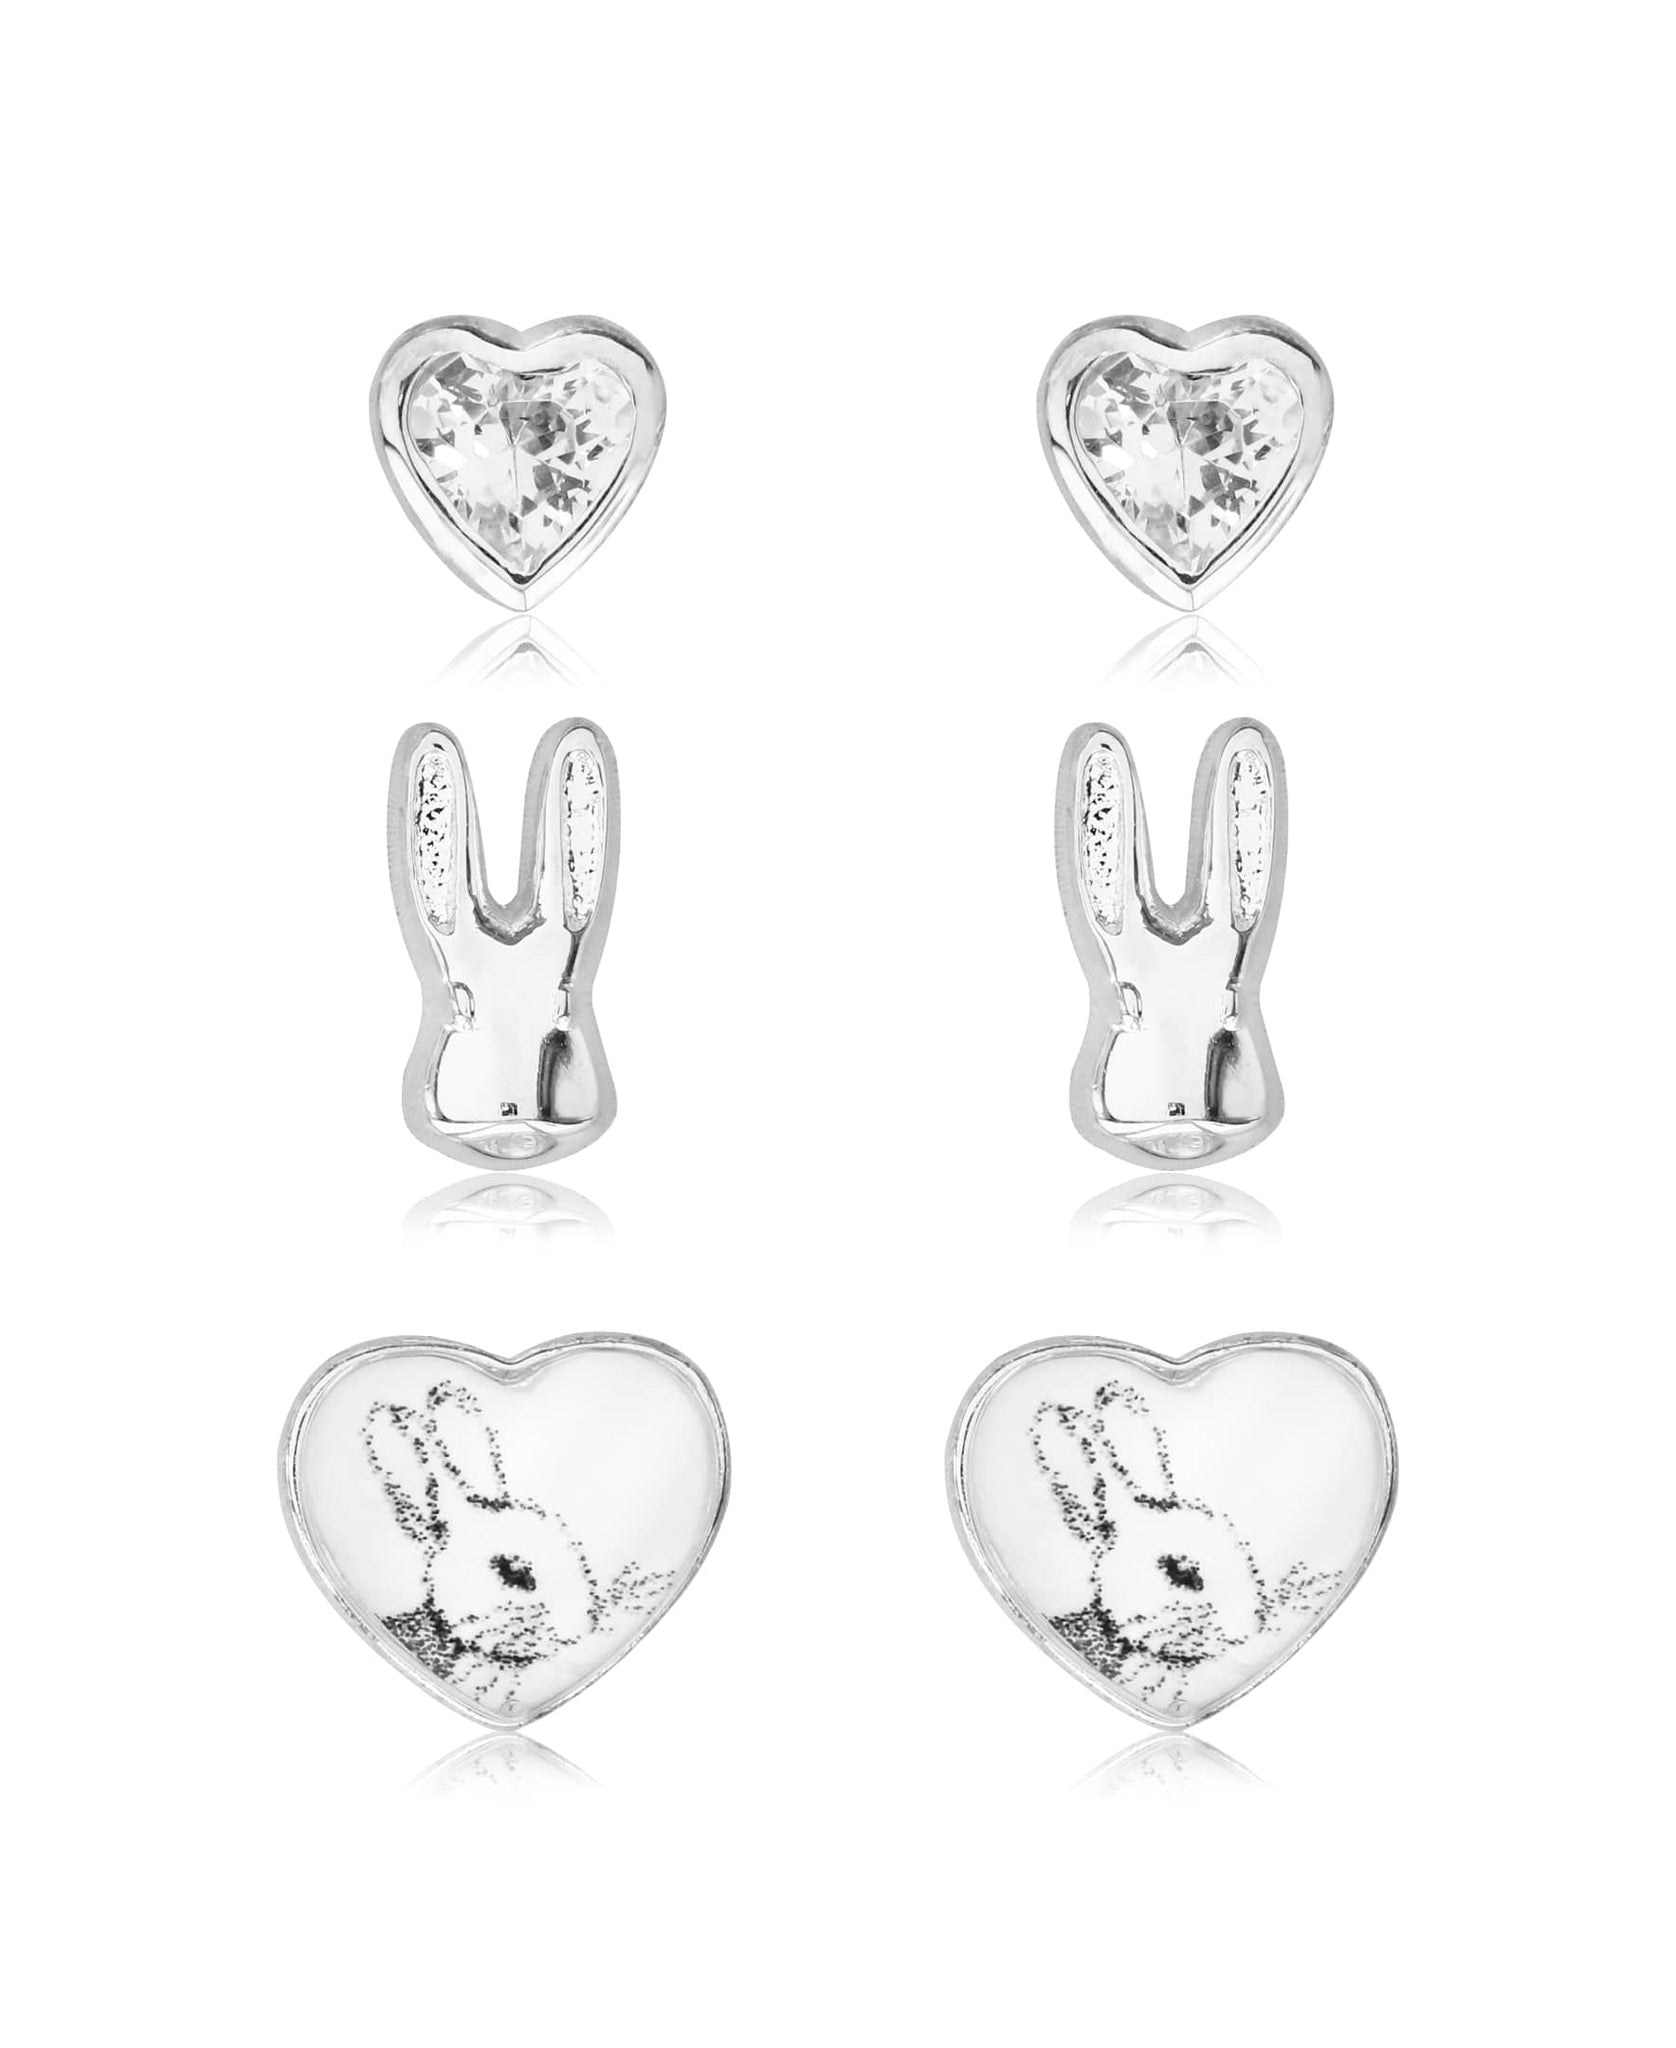 Beatrix Potter Peter Rabbit and Hearts Set of 3 Stud Earrings - Rhona Sutton Jewellery